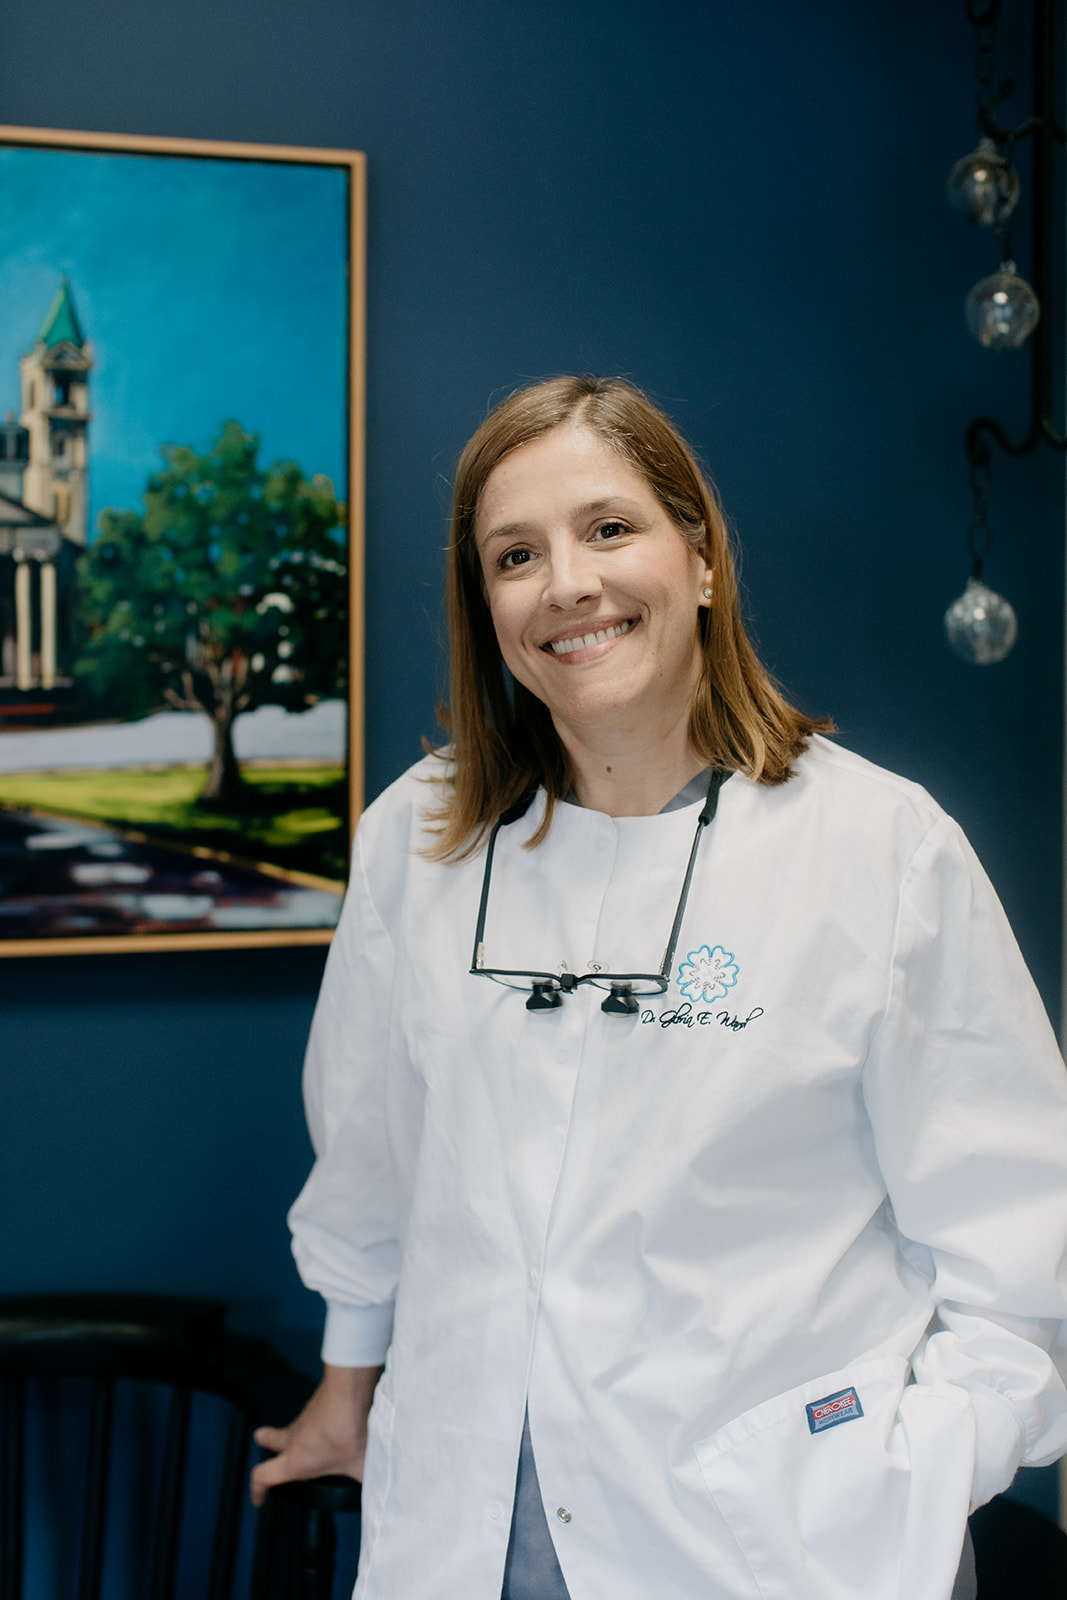 Dr. Gloria Ward earned her first D.D.S in her home country of Colombia, South America from CES University and received a Master of Science in Periodontal Prosthesis. - She moved to Virginia in 1999 and obtained a Master of Science in Dental Materials and later on earned her second D.D.S. degree - Magna Cum Laude - at Virginia Commonwealth University in 2003. In addition to practicing dentistry, Dr. Ward is certified in Oral Conscious Sedation from VCU School of Dentistry and speaks Spanish fluently. She also has a special interest in Sleep Apnea and works with multiple Sleep Specialists in the area.Read More +